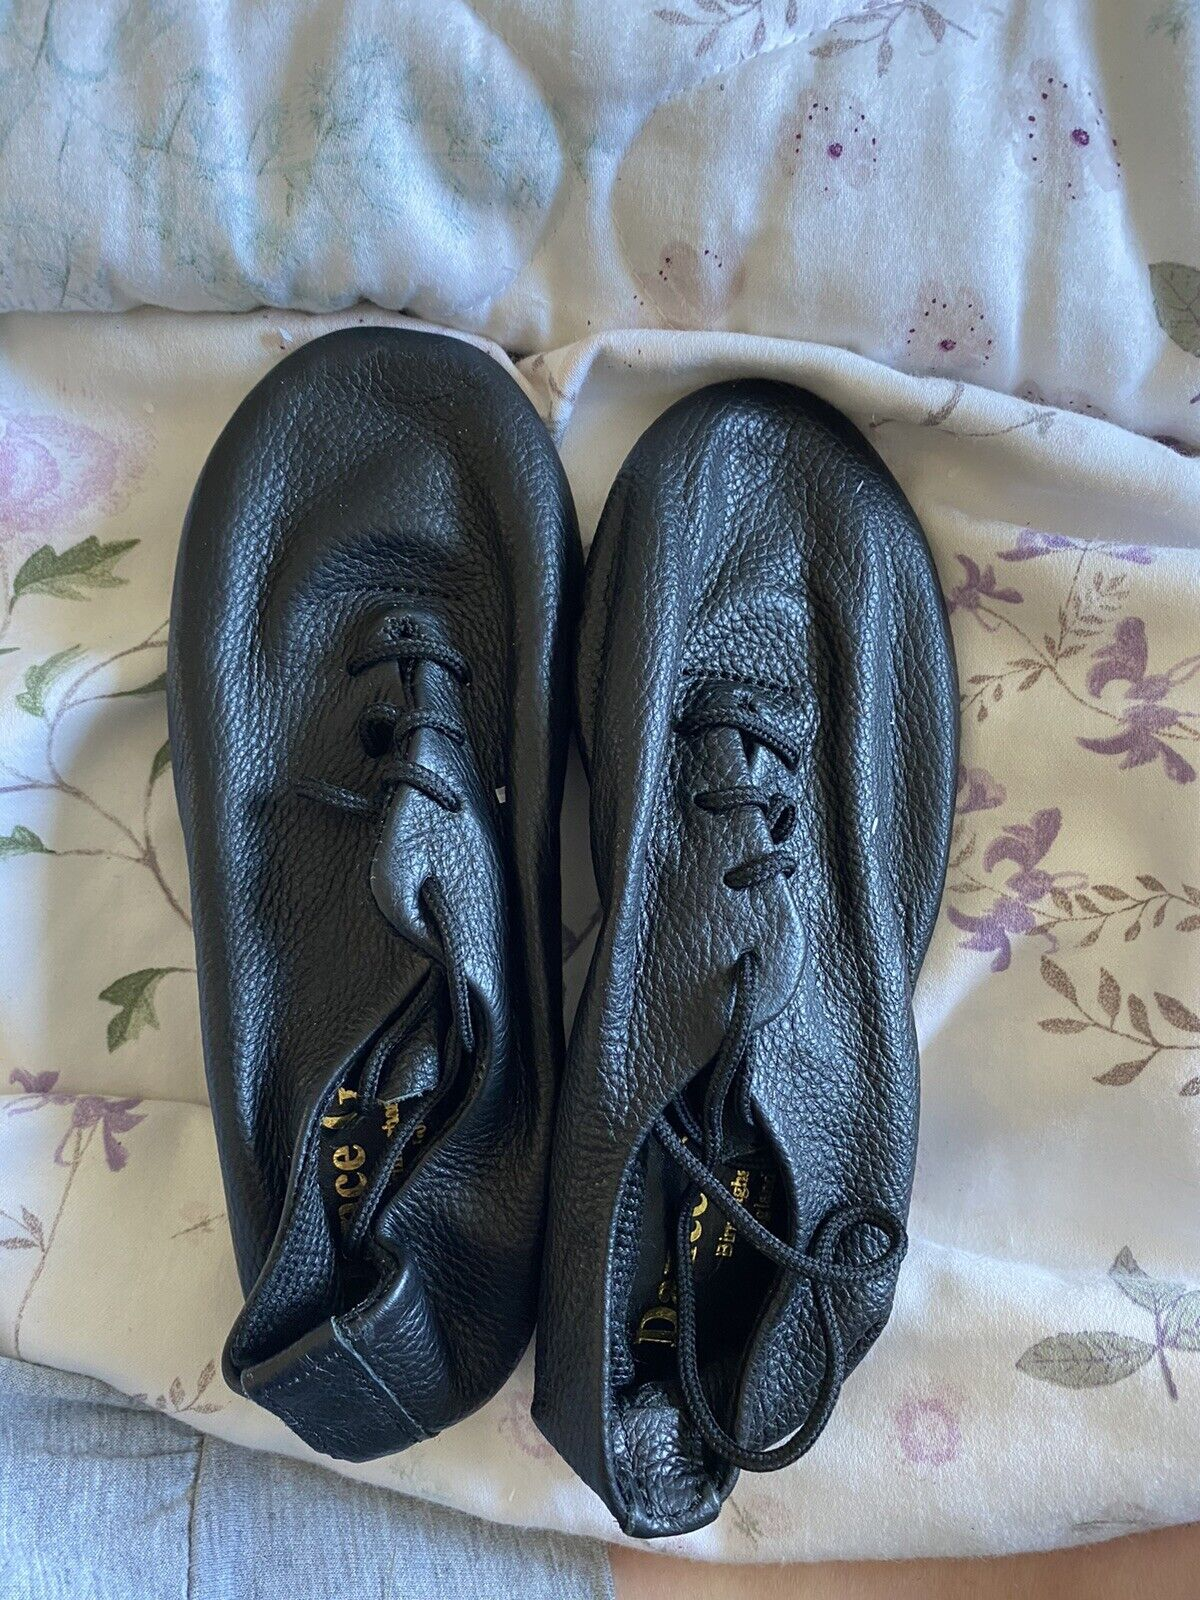 Dance gear Black Jazz Shoes Childrens Size 10 - 2 Available